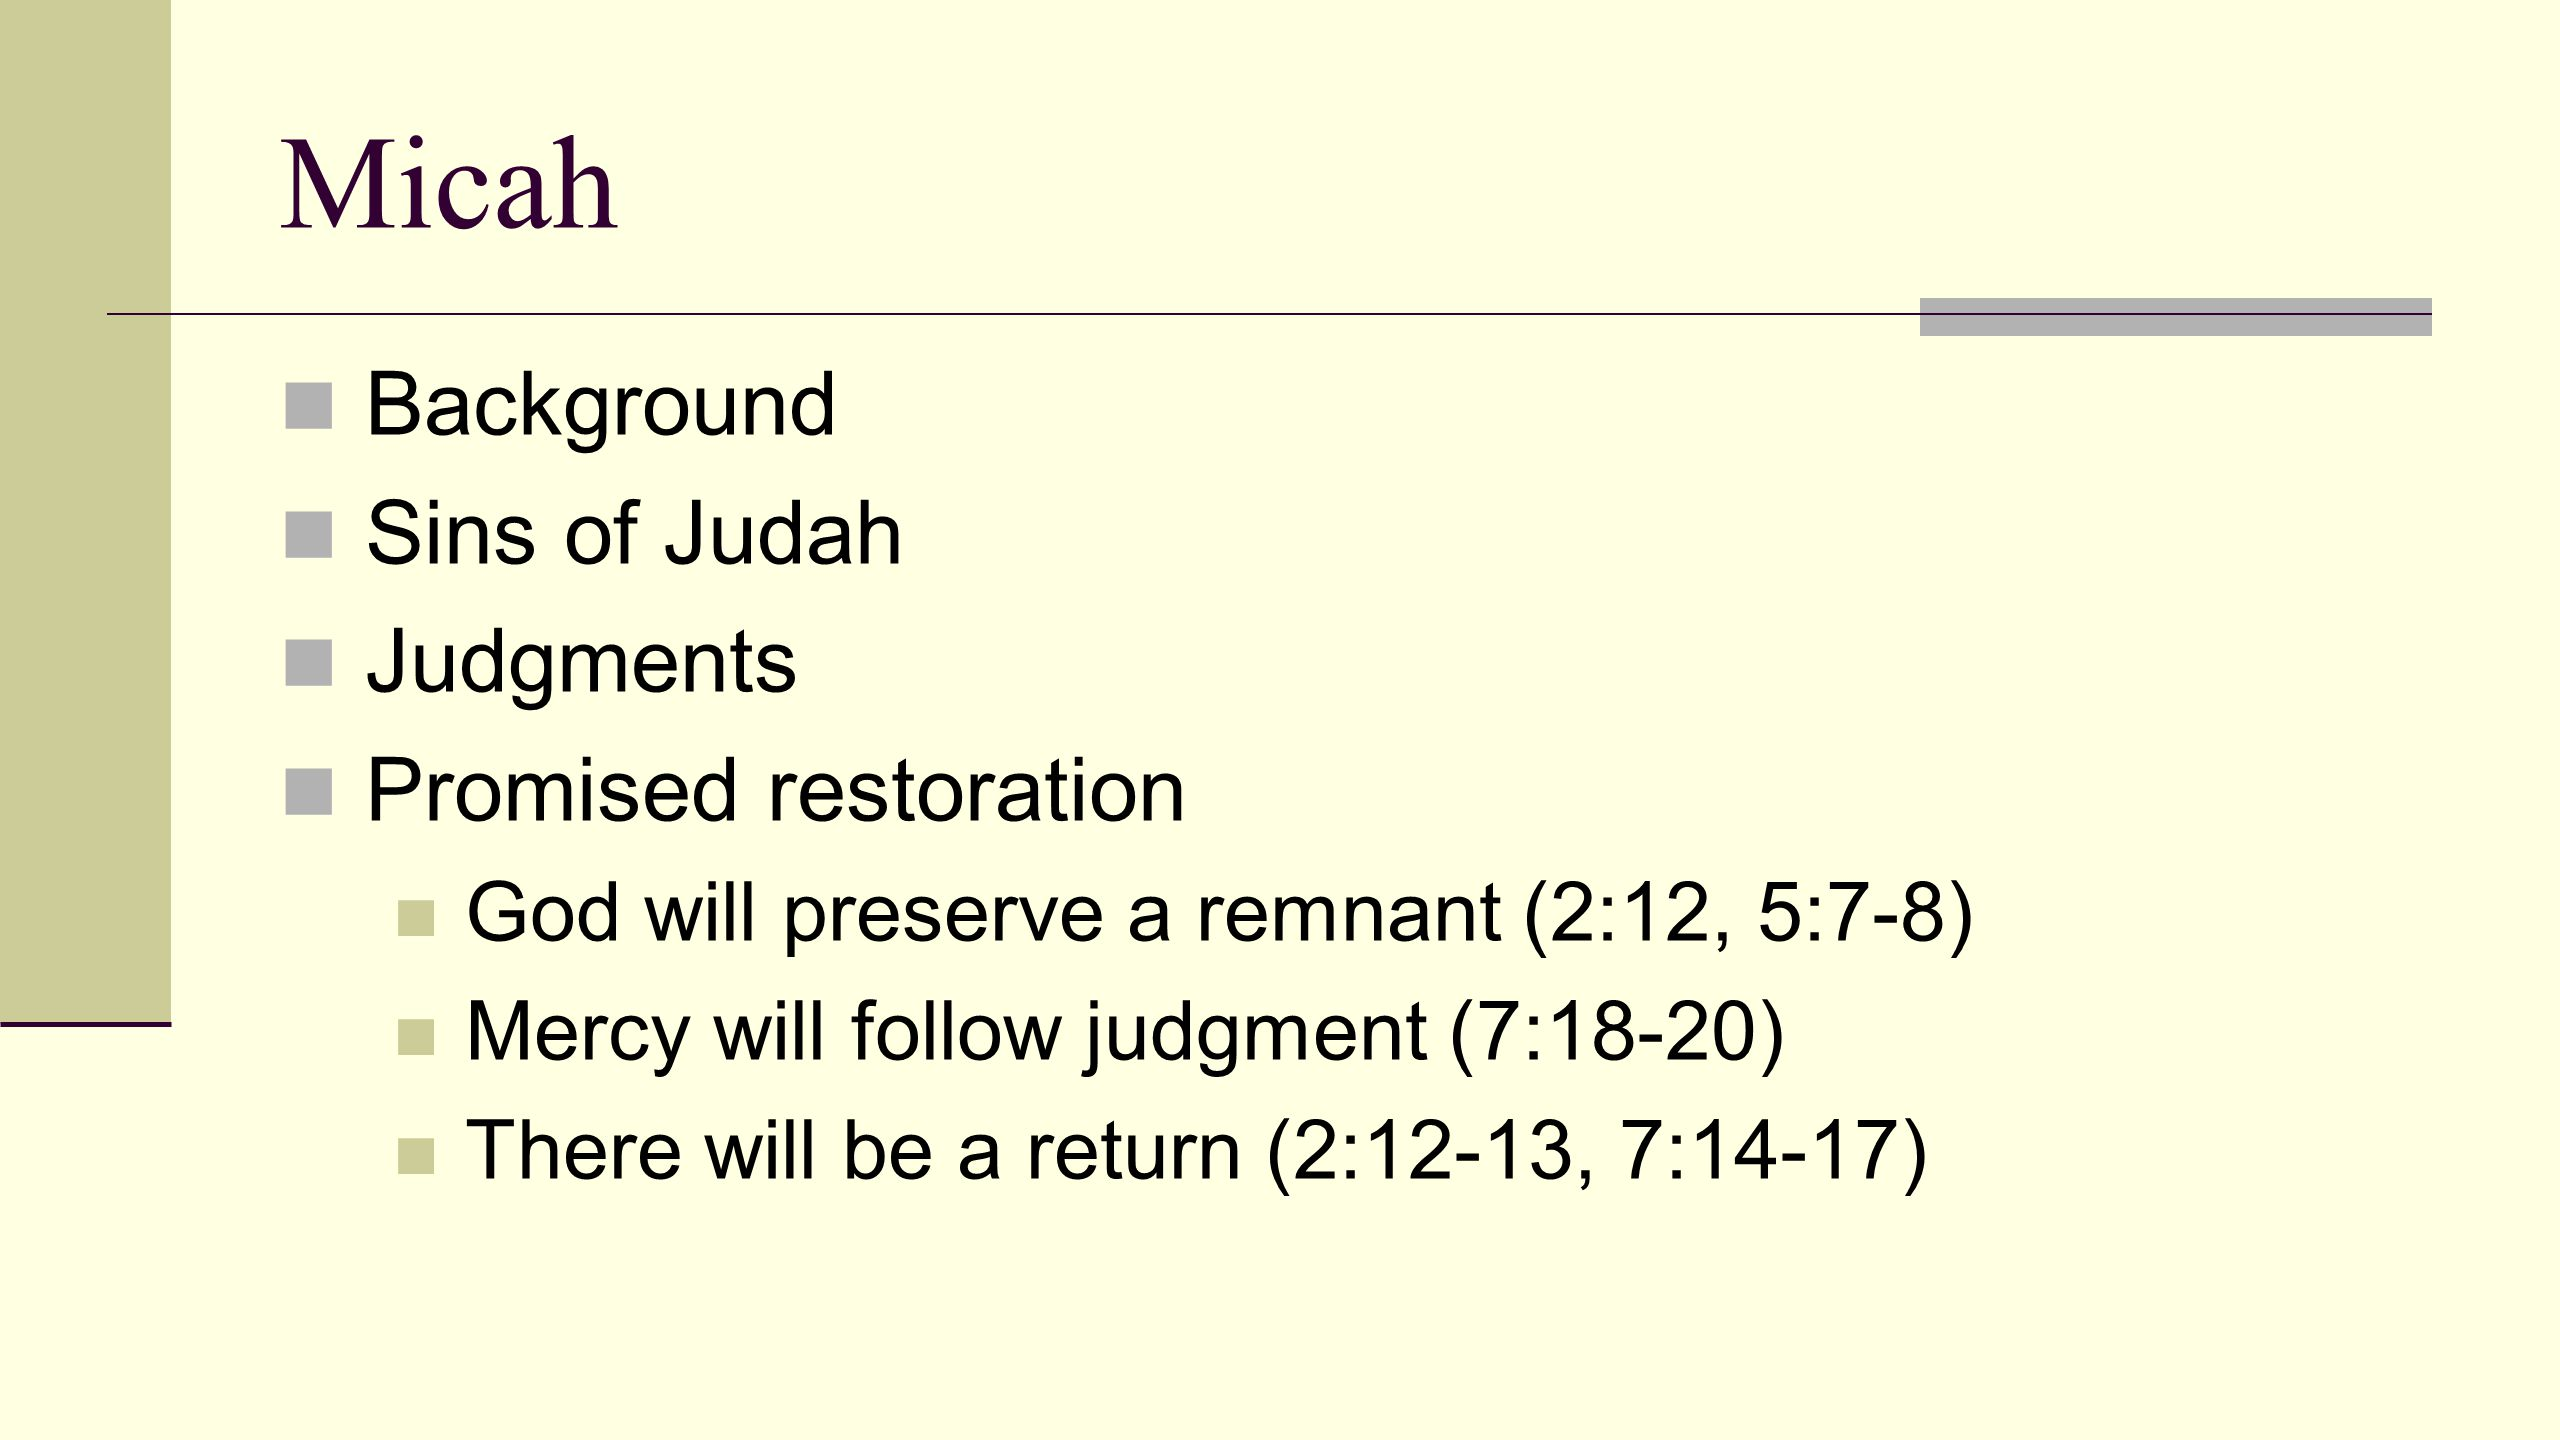 Micah Background Sins of Judah Judgments Promised restoration God will preserve a remnant (2:12, 5:7-8) Mercy will follow judgment (7:18-20) There will be a return (2:12-13, 7:14-17)